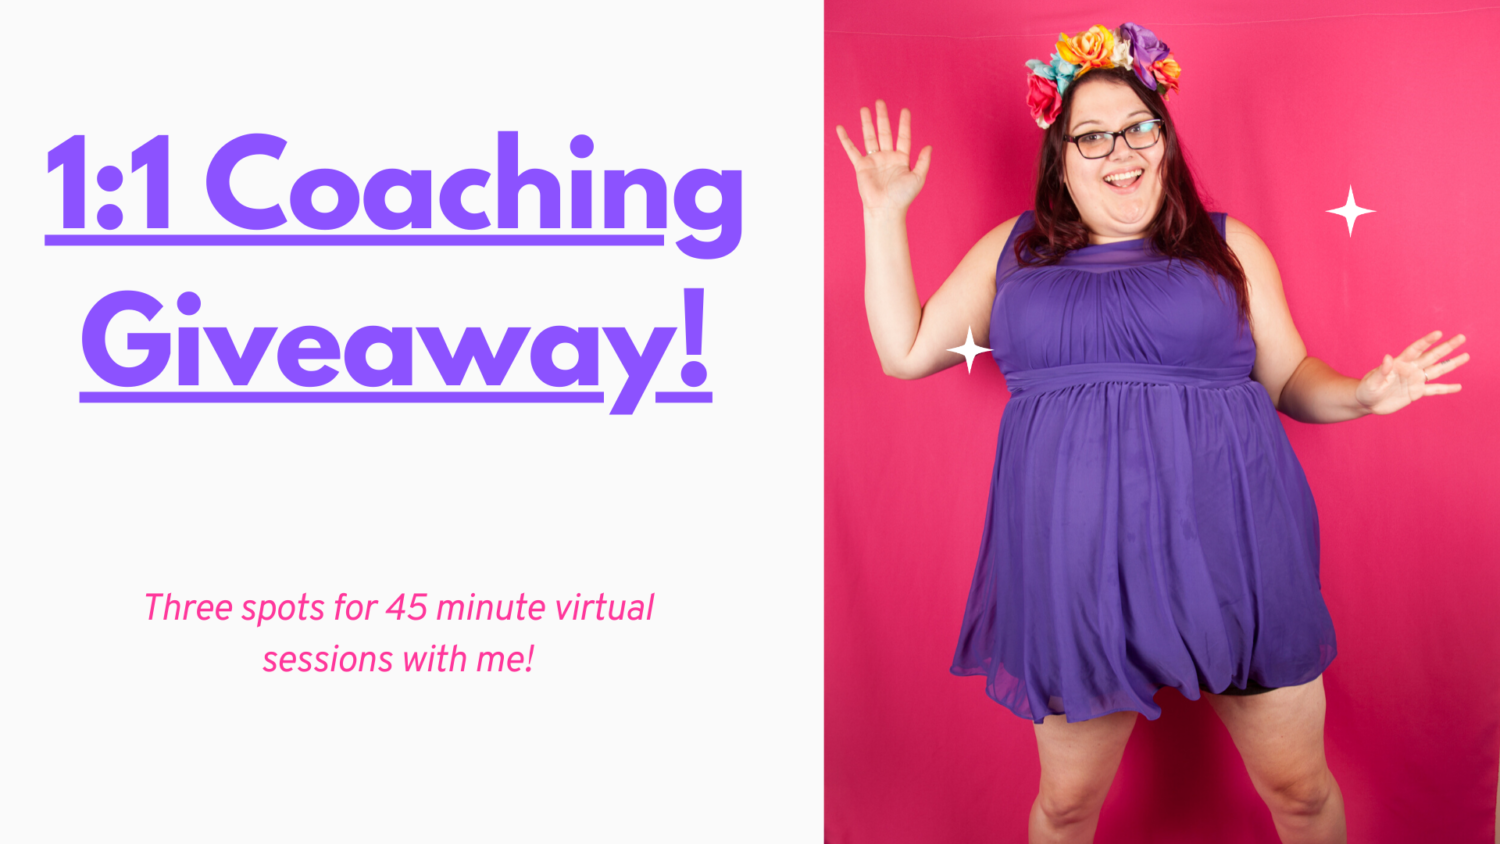 1:1 Coaching Giveaway For COVID-19 | Uncustomary